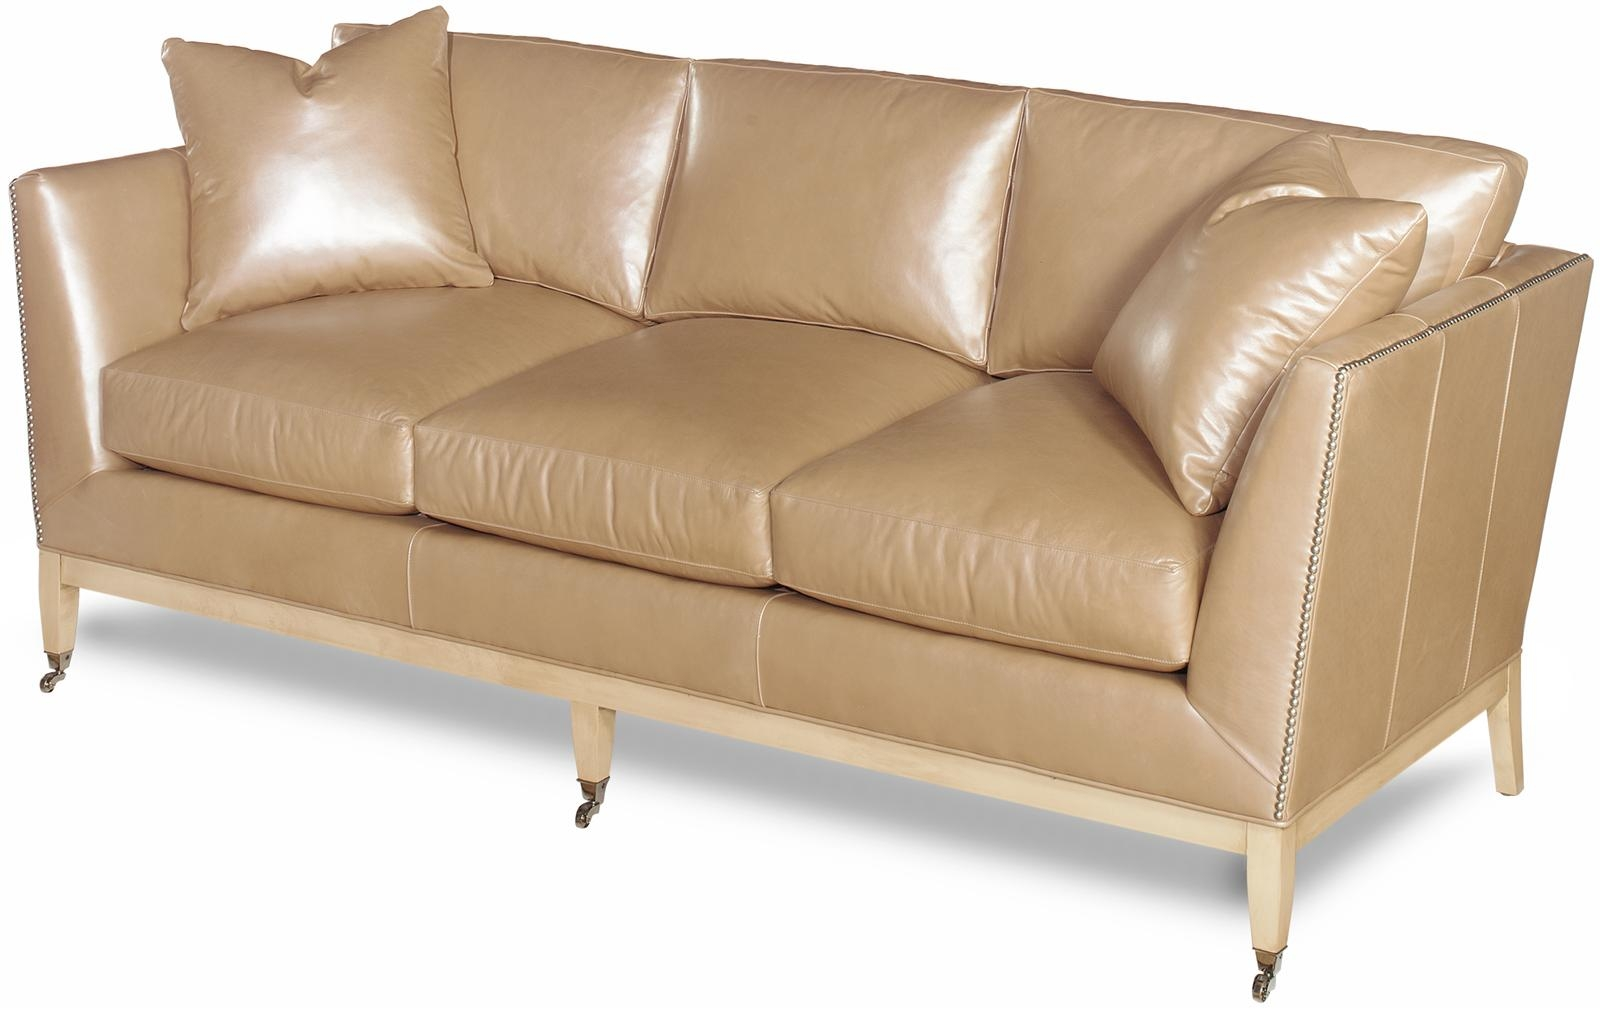 Sleek Leather Couch Sleek New Leather Sofa Hand Crafted Top Grain Leather